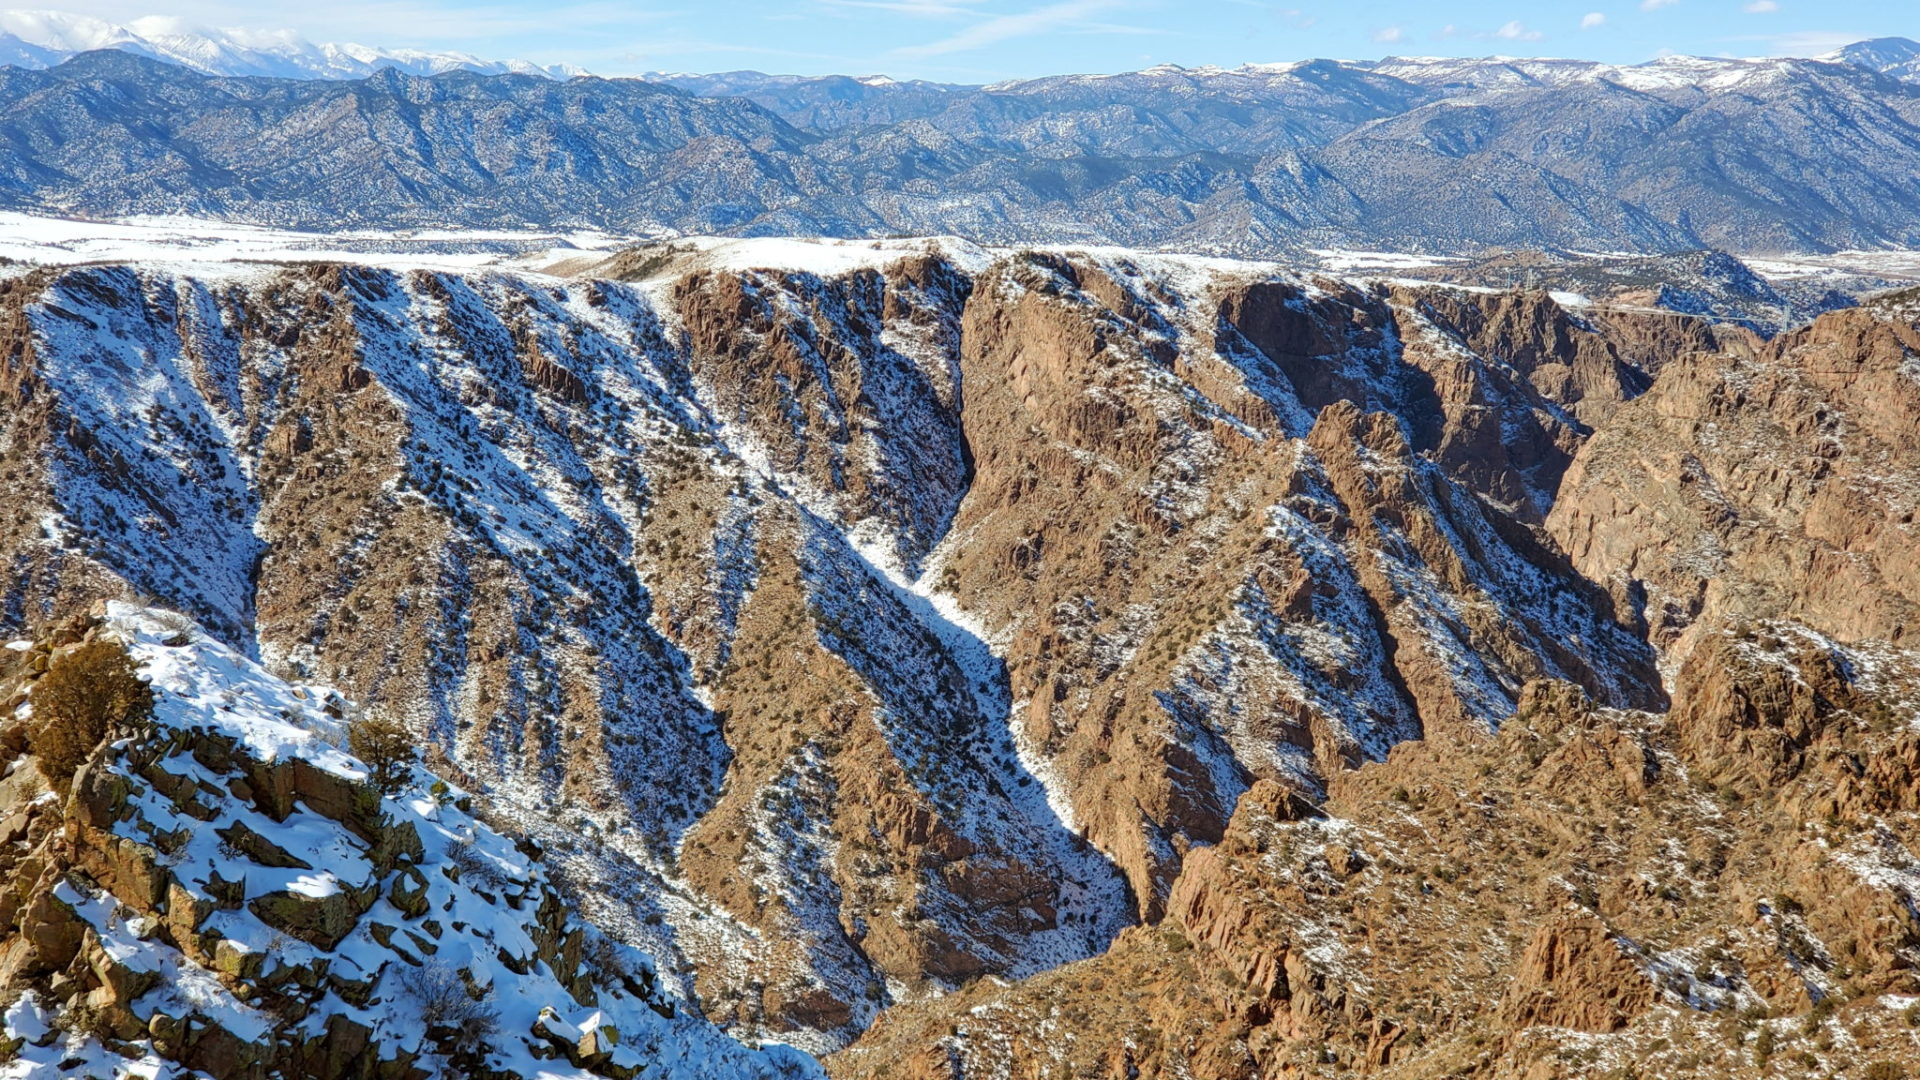 View of the Royal Gorge from the summit with the bridge on the right